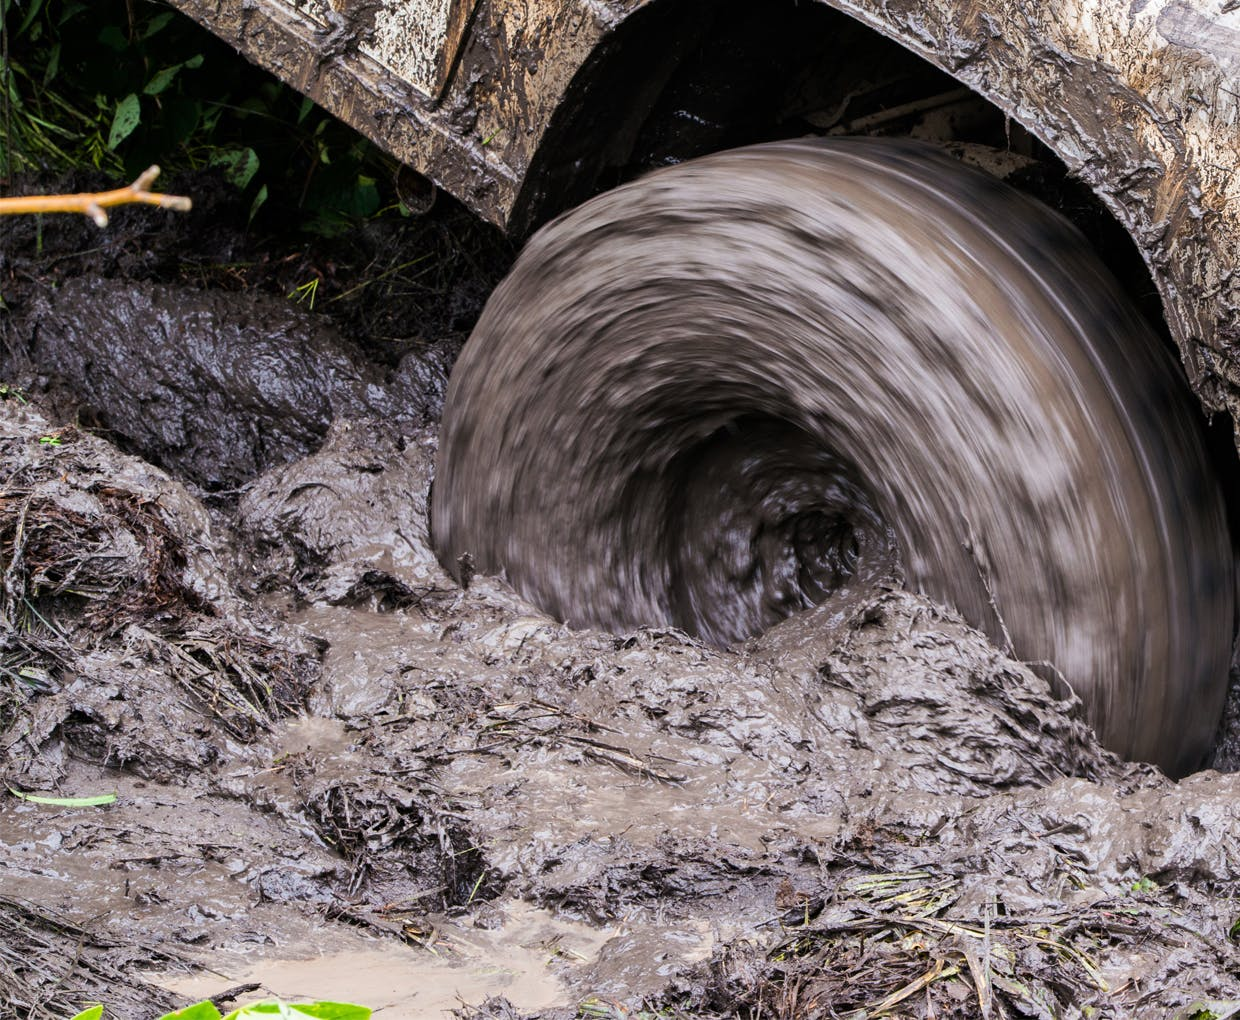 Consumer confidence 'stuck in the mud' – Marketing Week